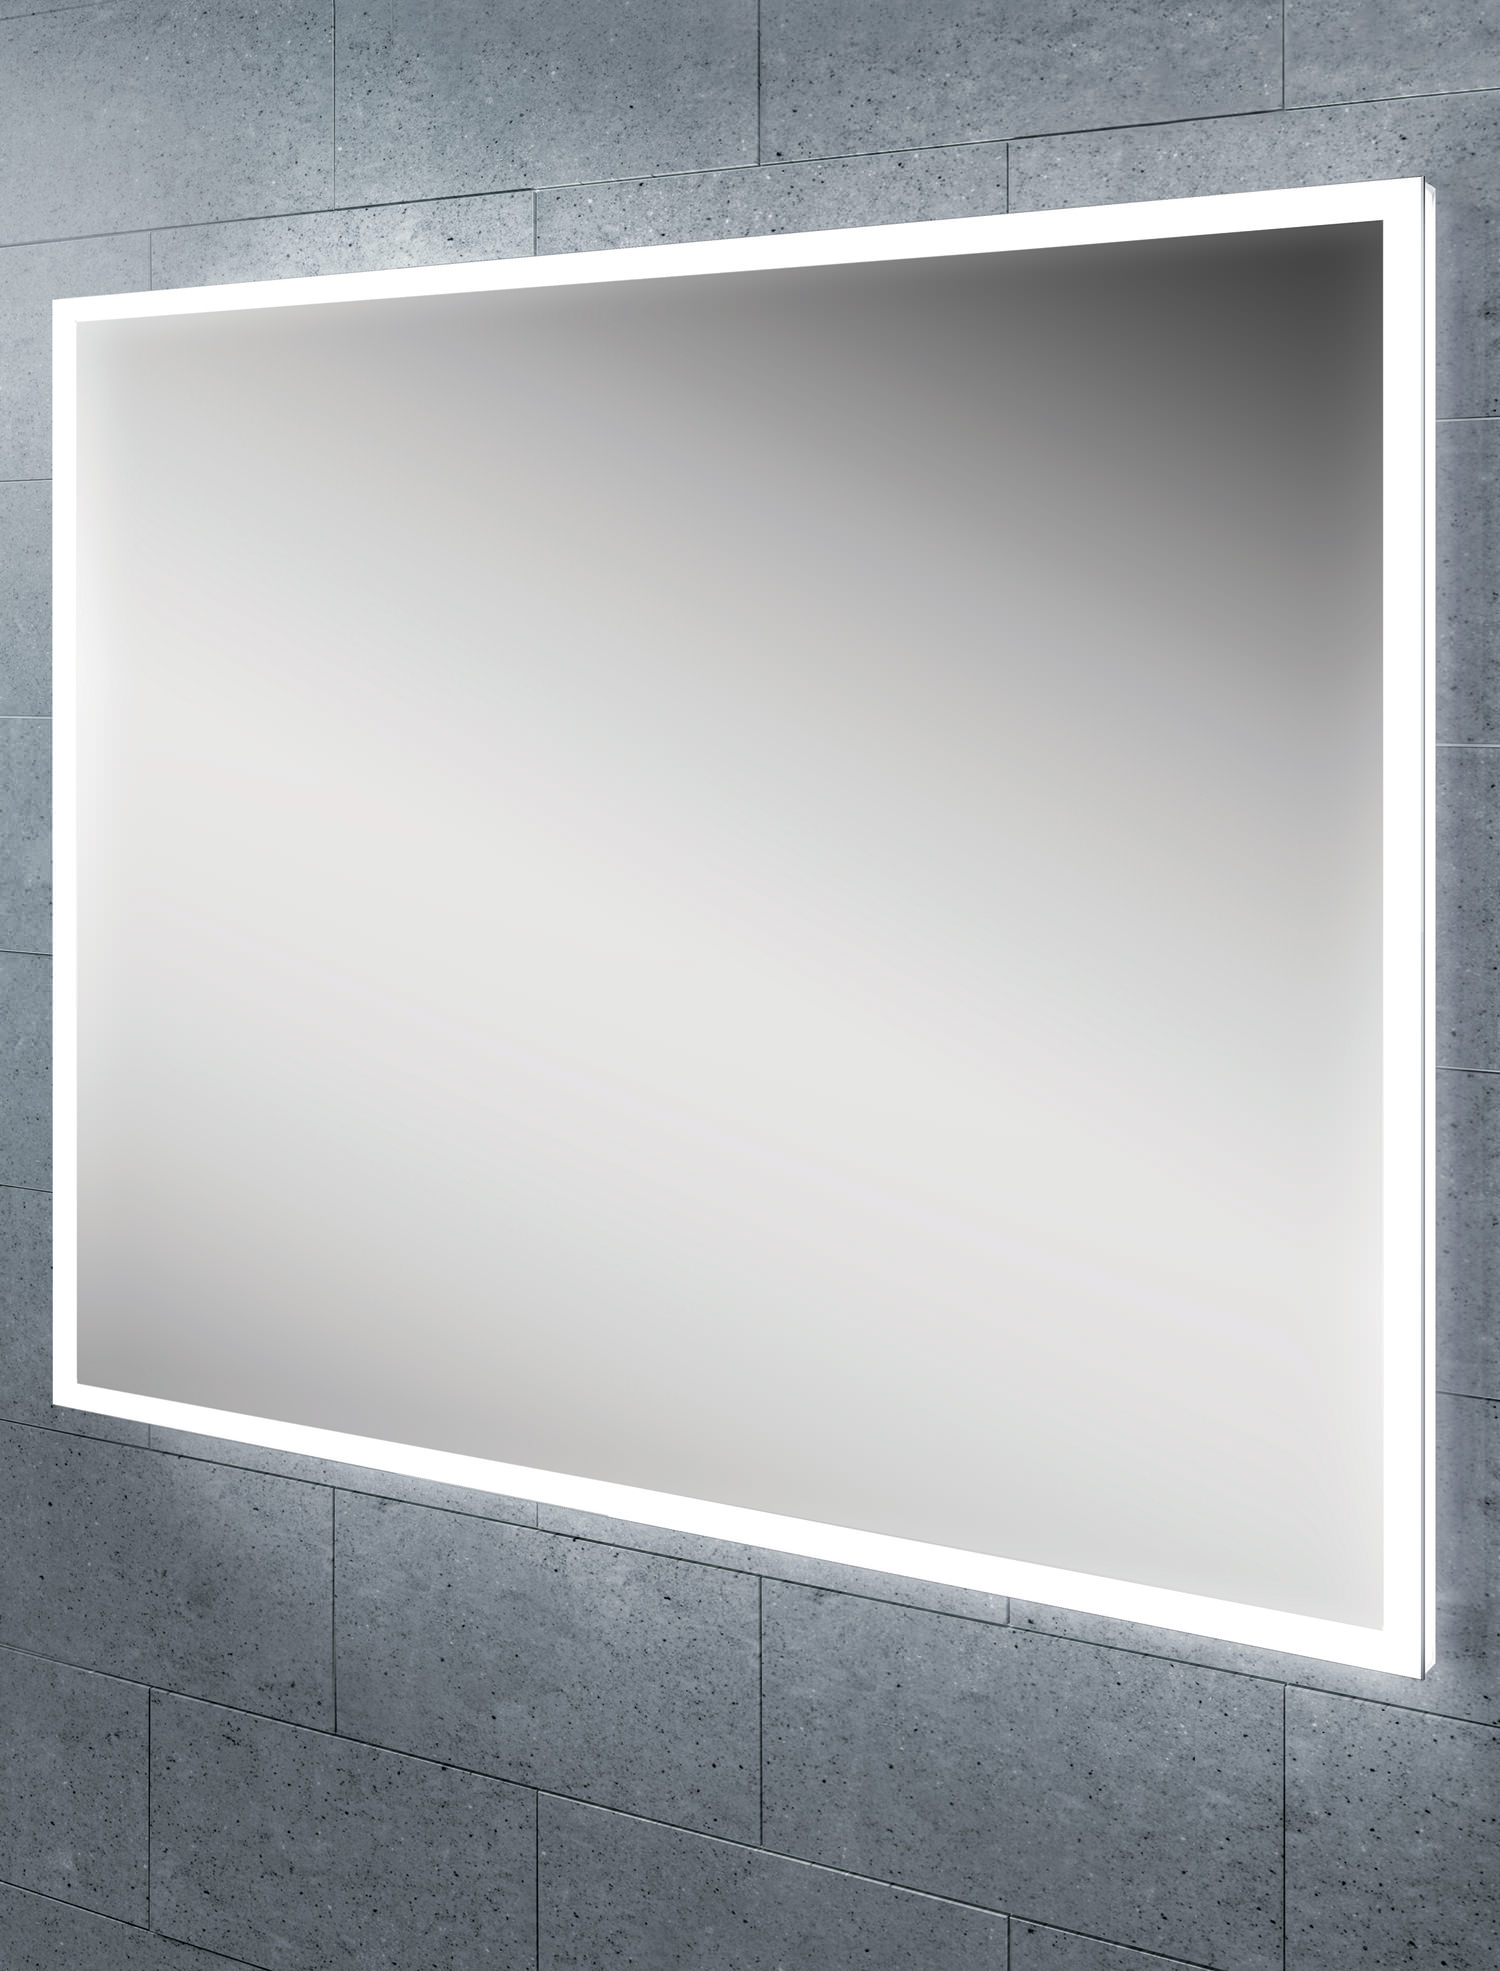 Bathroom Mirrors Led hib globe 60 steam free led illuminated bathroom mirror 800x600mm